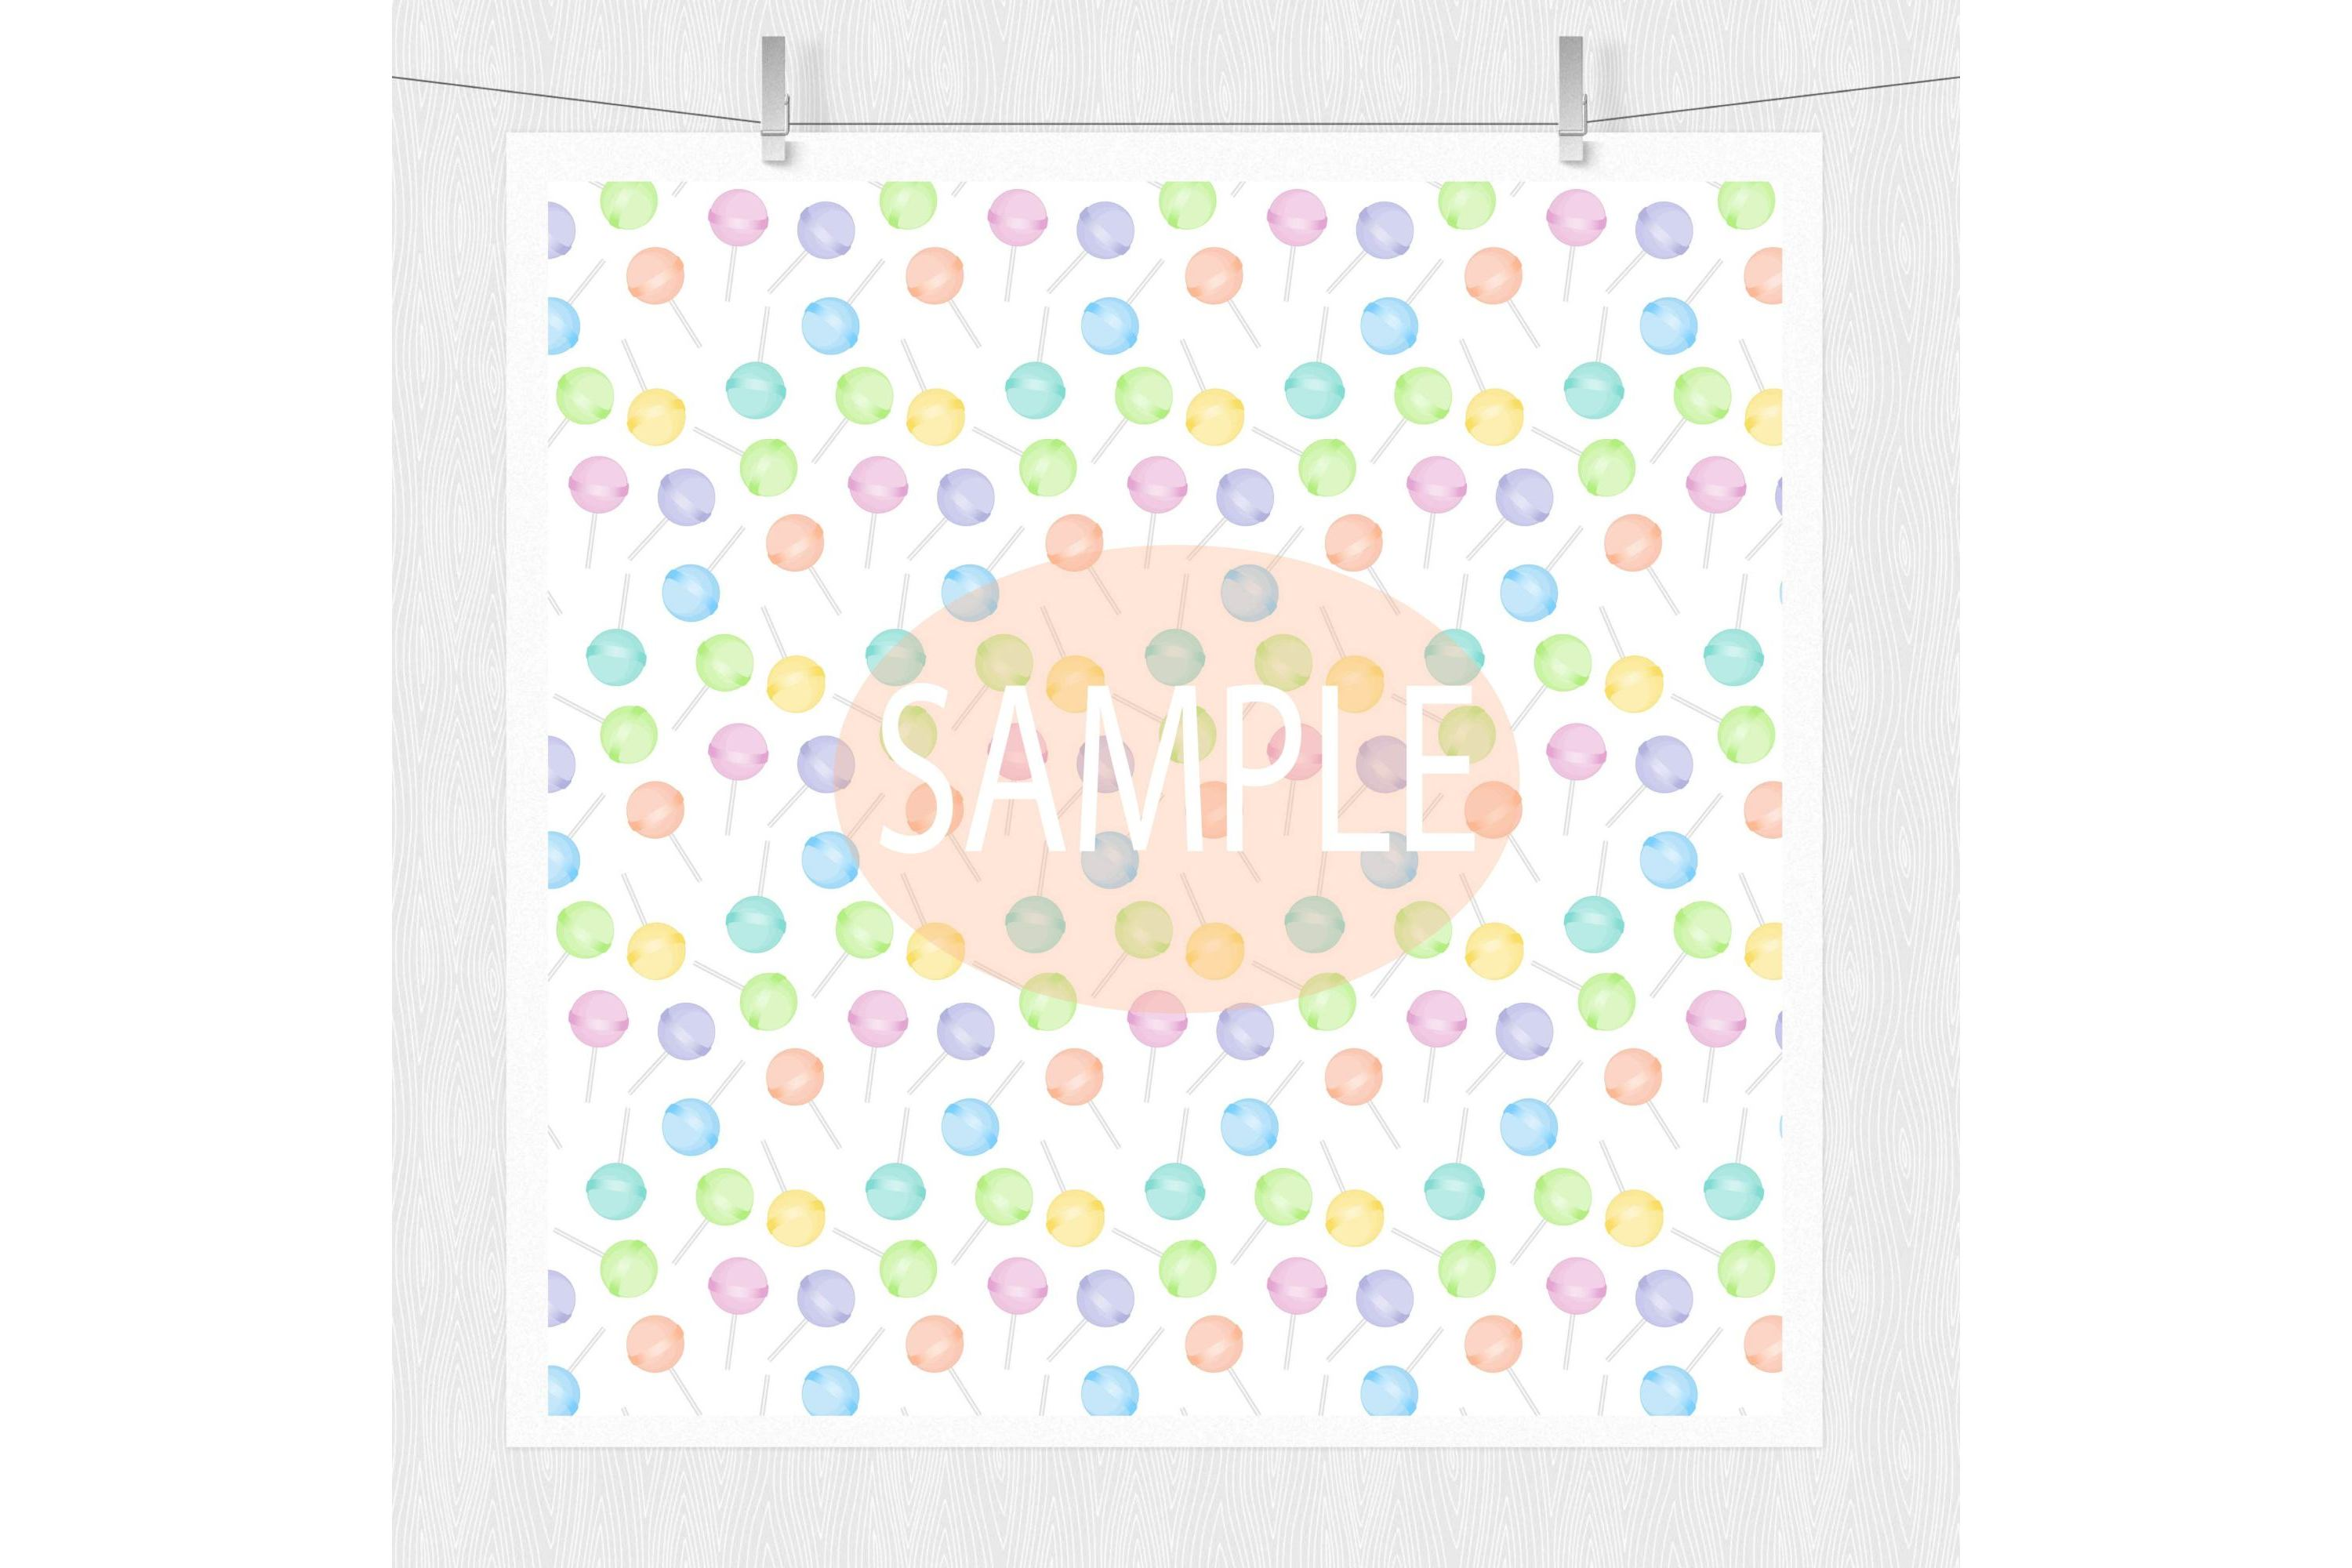 Candy Pattern Backgrounds example image 4